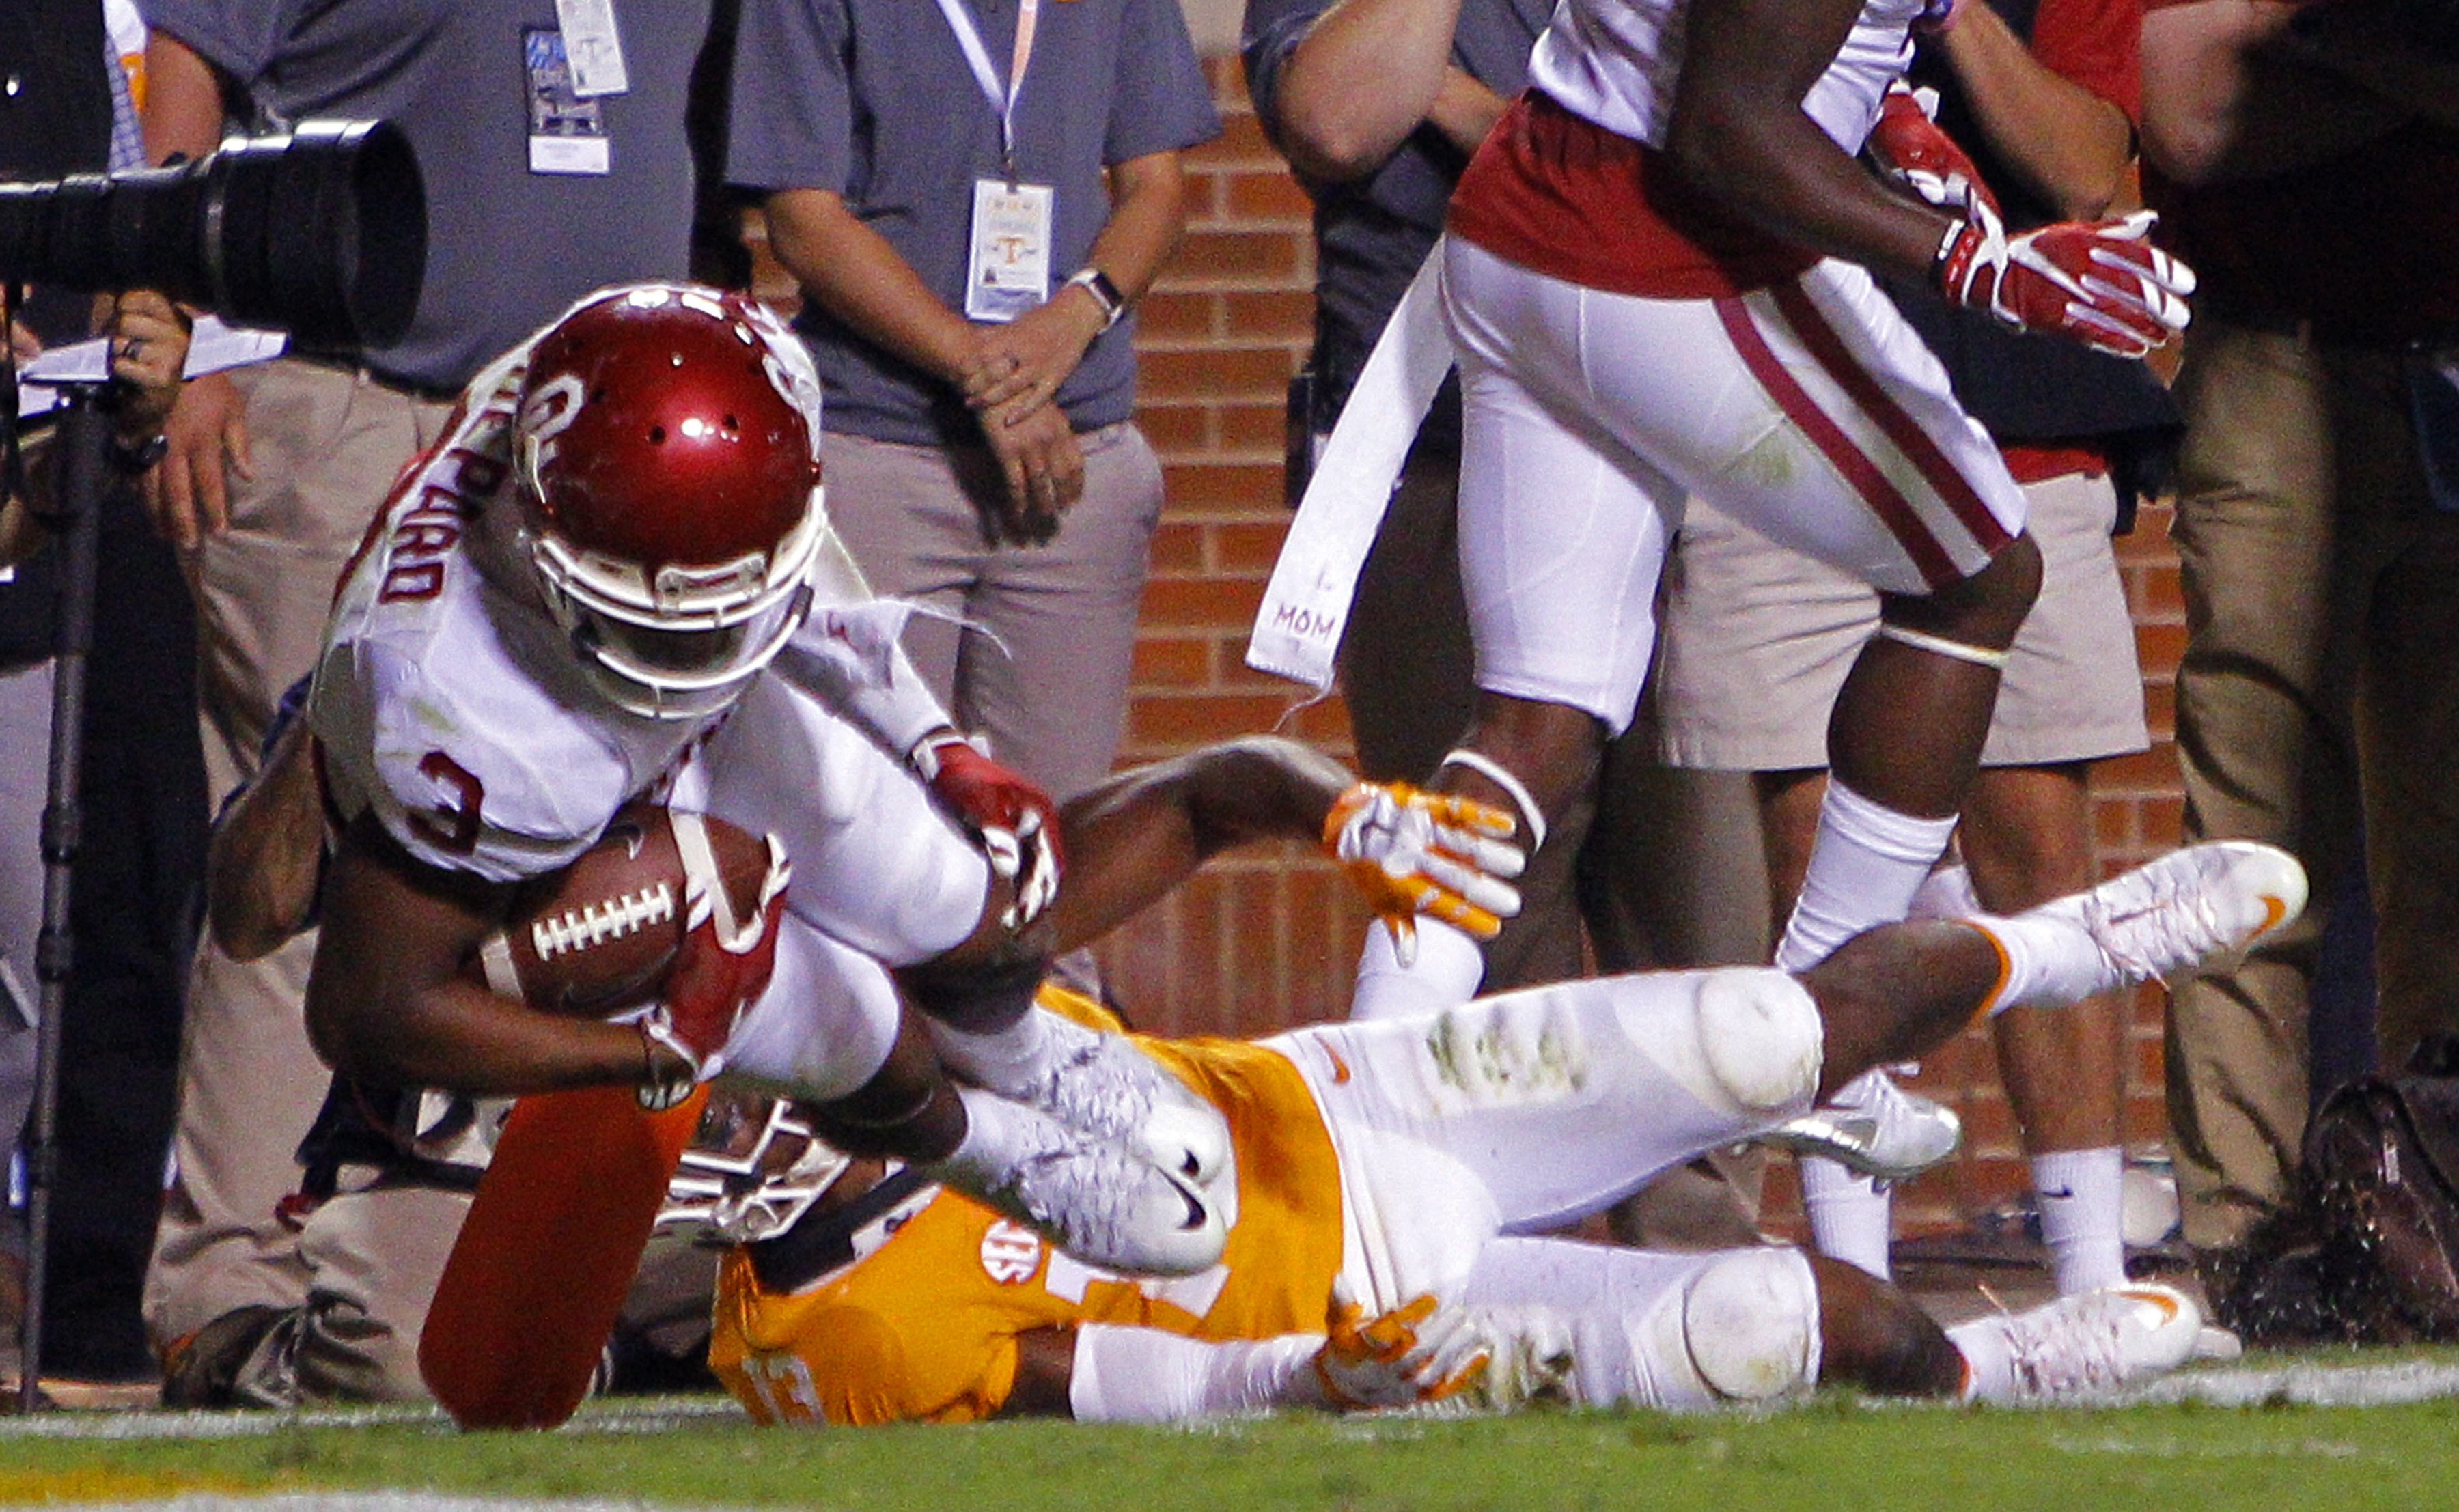 Oklahoma wide receiver Sterling Shepard (3) scores a touchdown during double overtime of an NCAA college football game against Tennessee, Saturday, Sept. 12, 2015 in Knoxville, Tenn. Oklahoma won 31-24. (AP Photo/Wade Payne)